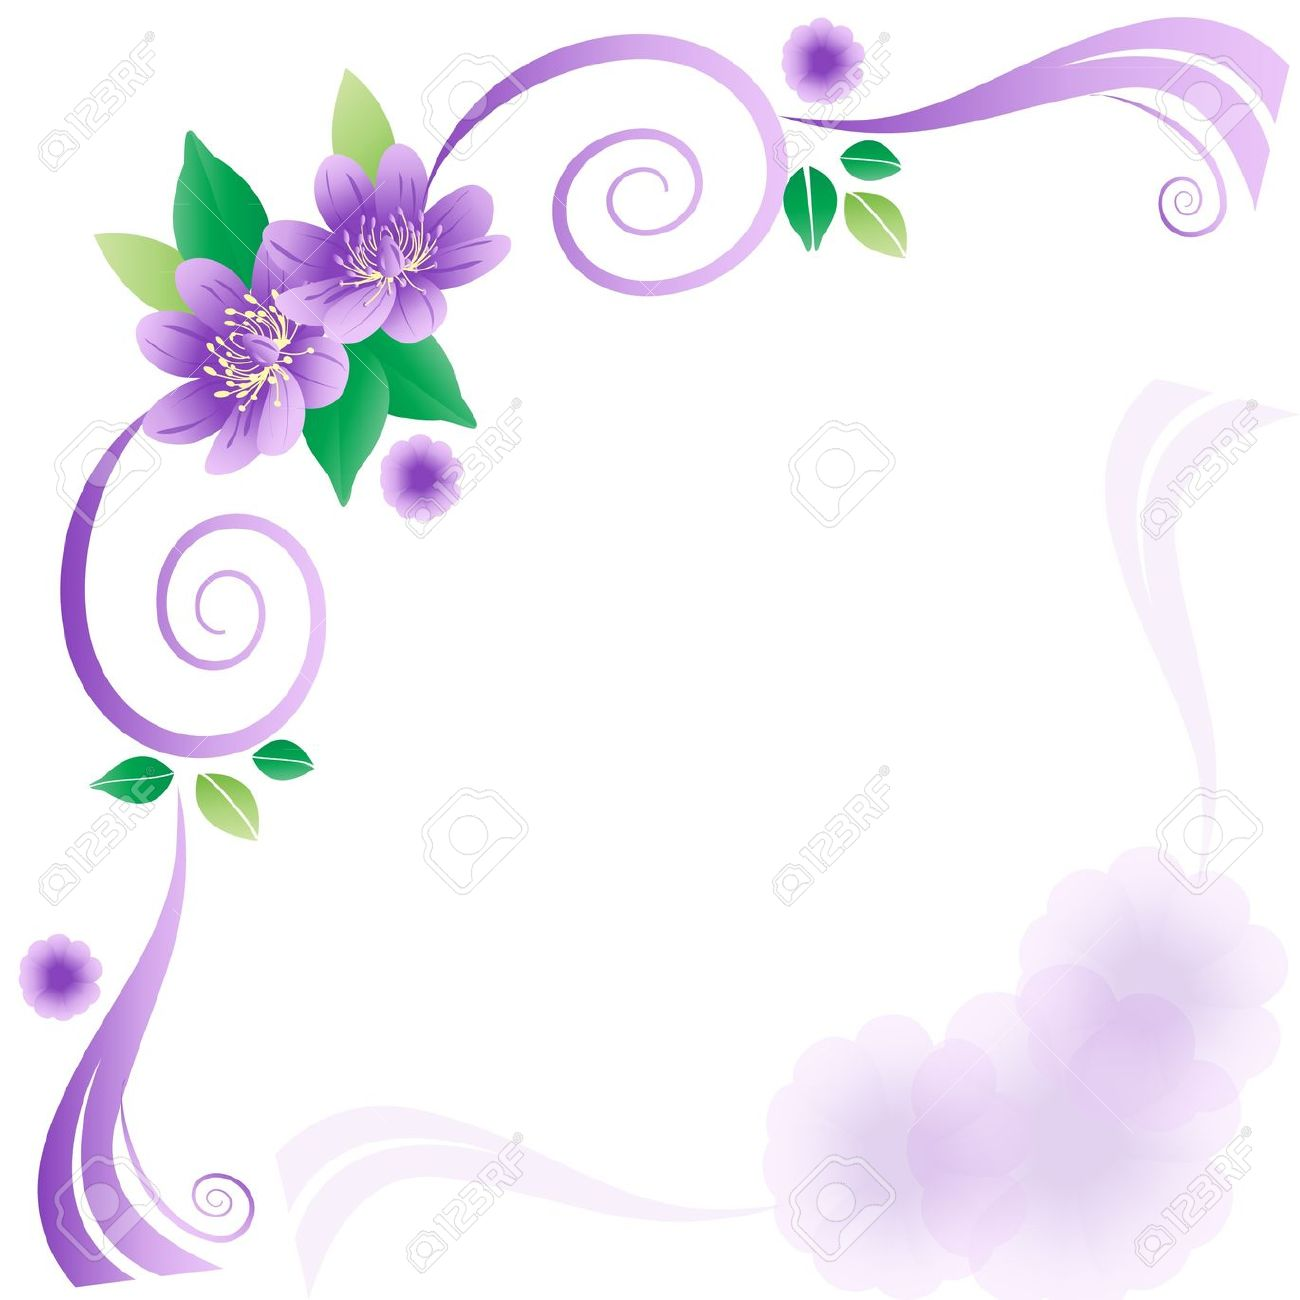 Wedding Card With Lavender Flowers Royalty Free Cliparts, Vectors.